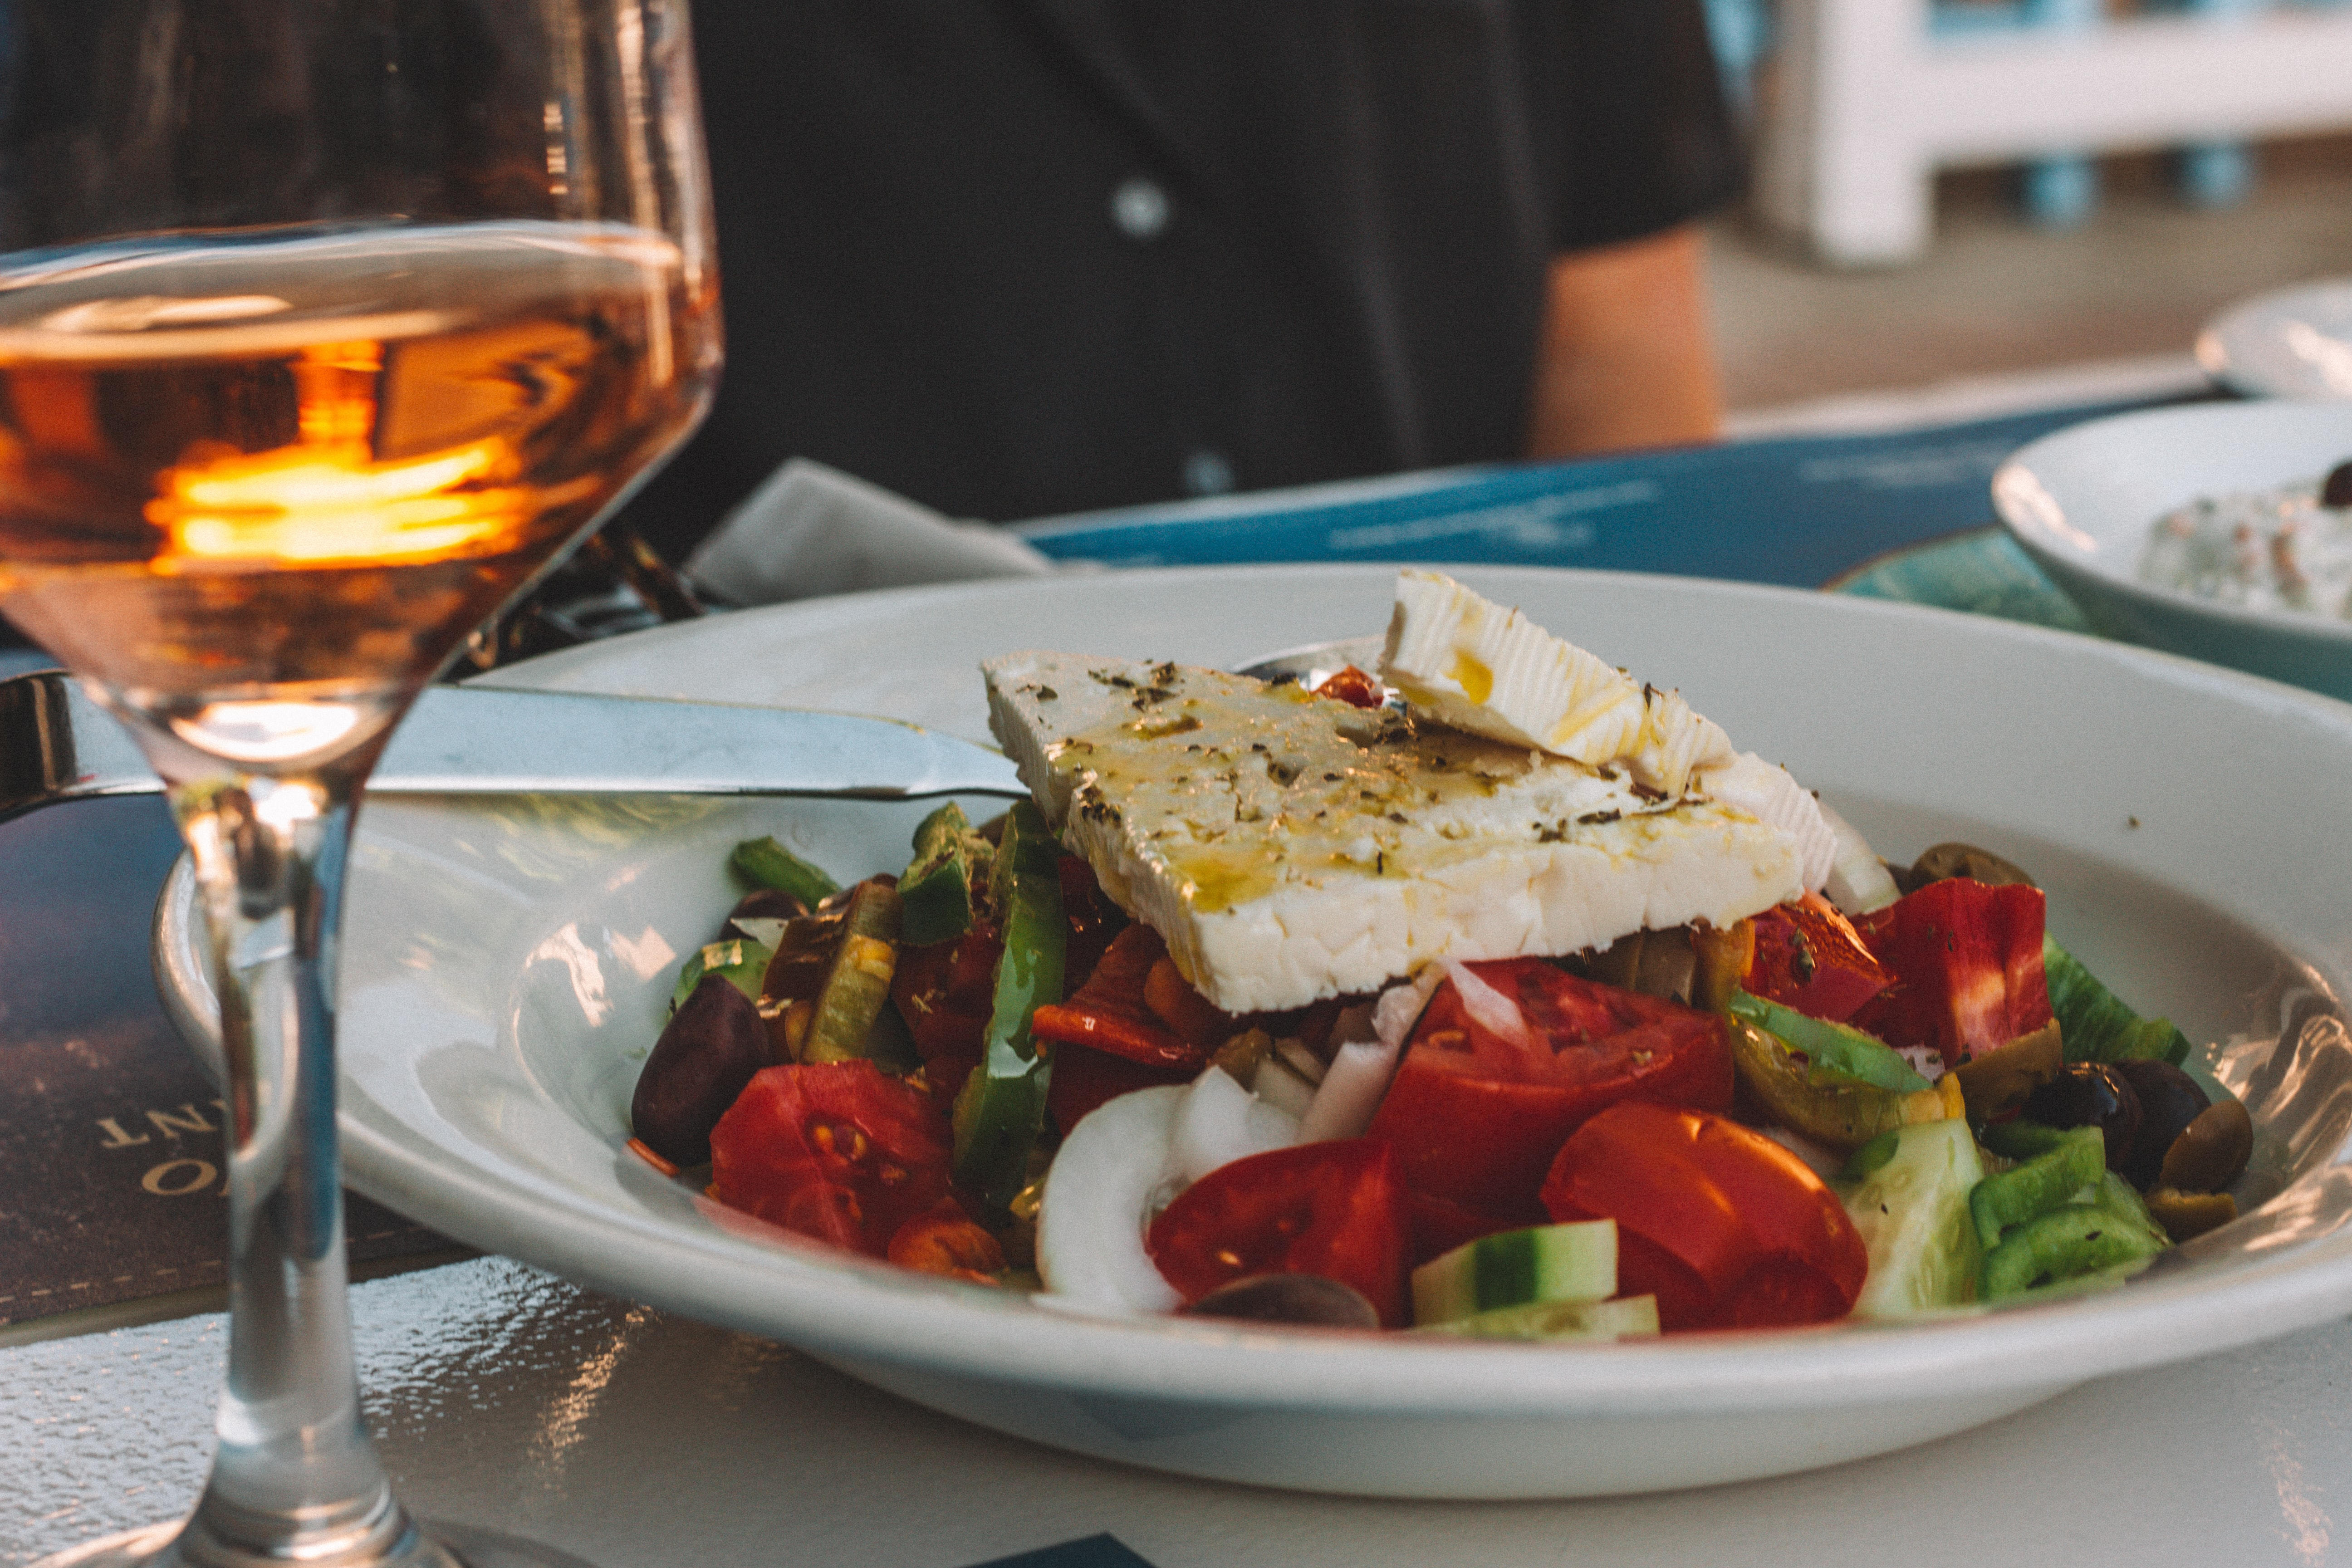 Close up of cheese on top of salad with wine in the foreground